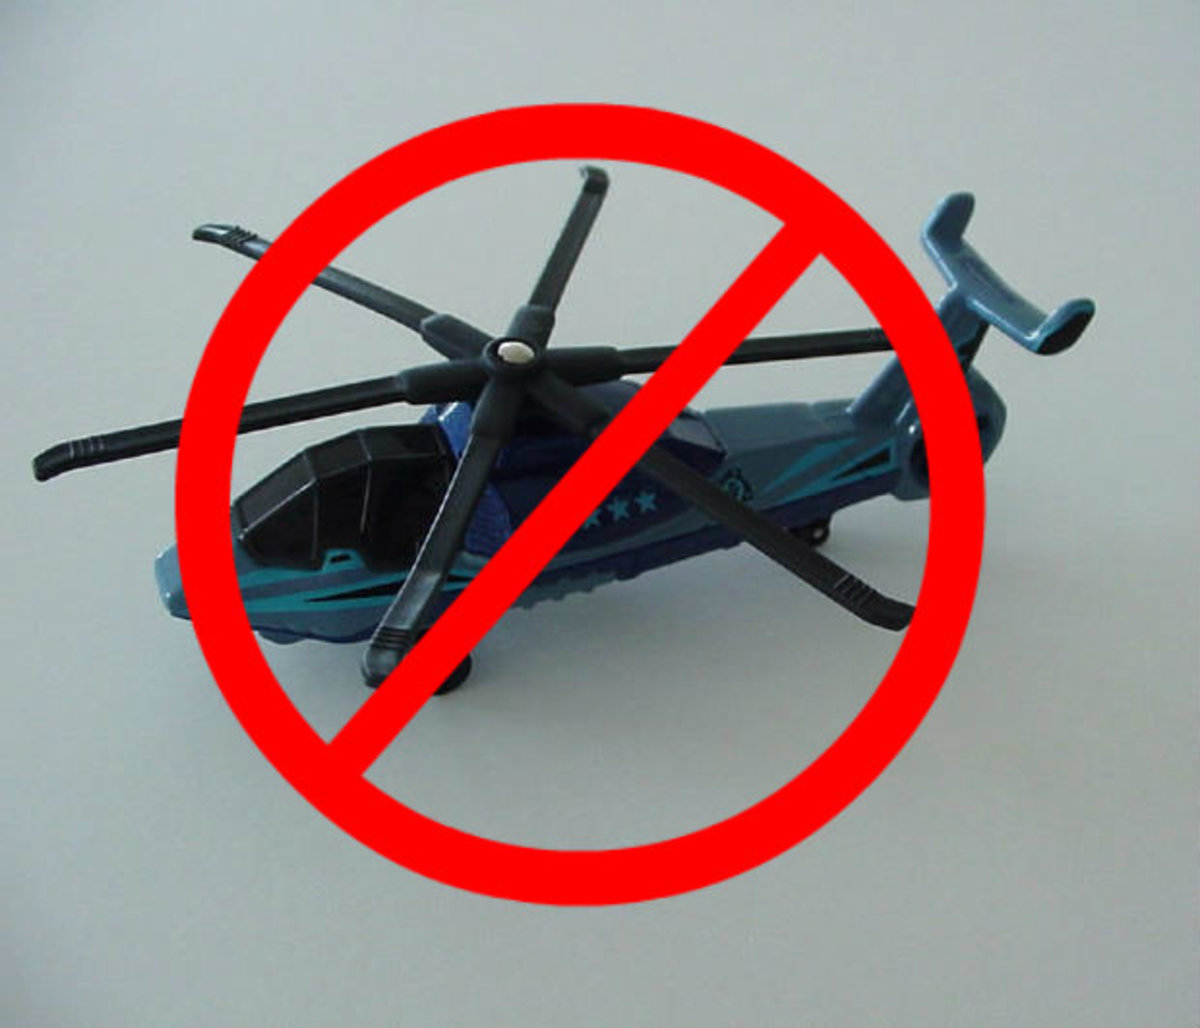 No helicopter parenting...don't hover around the kids when they are having fun.